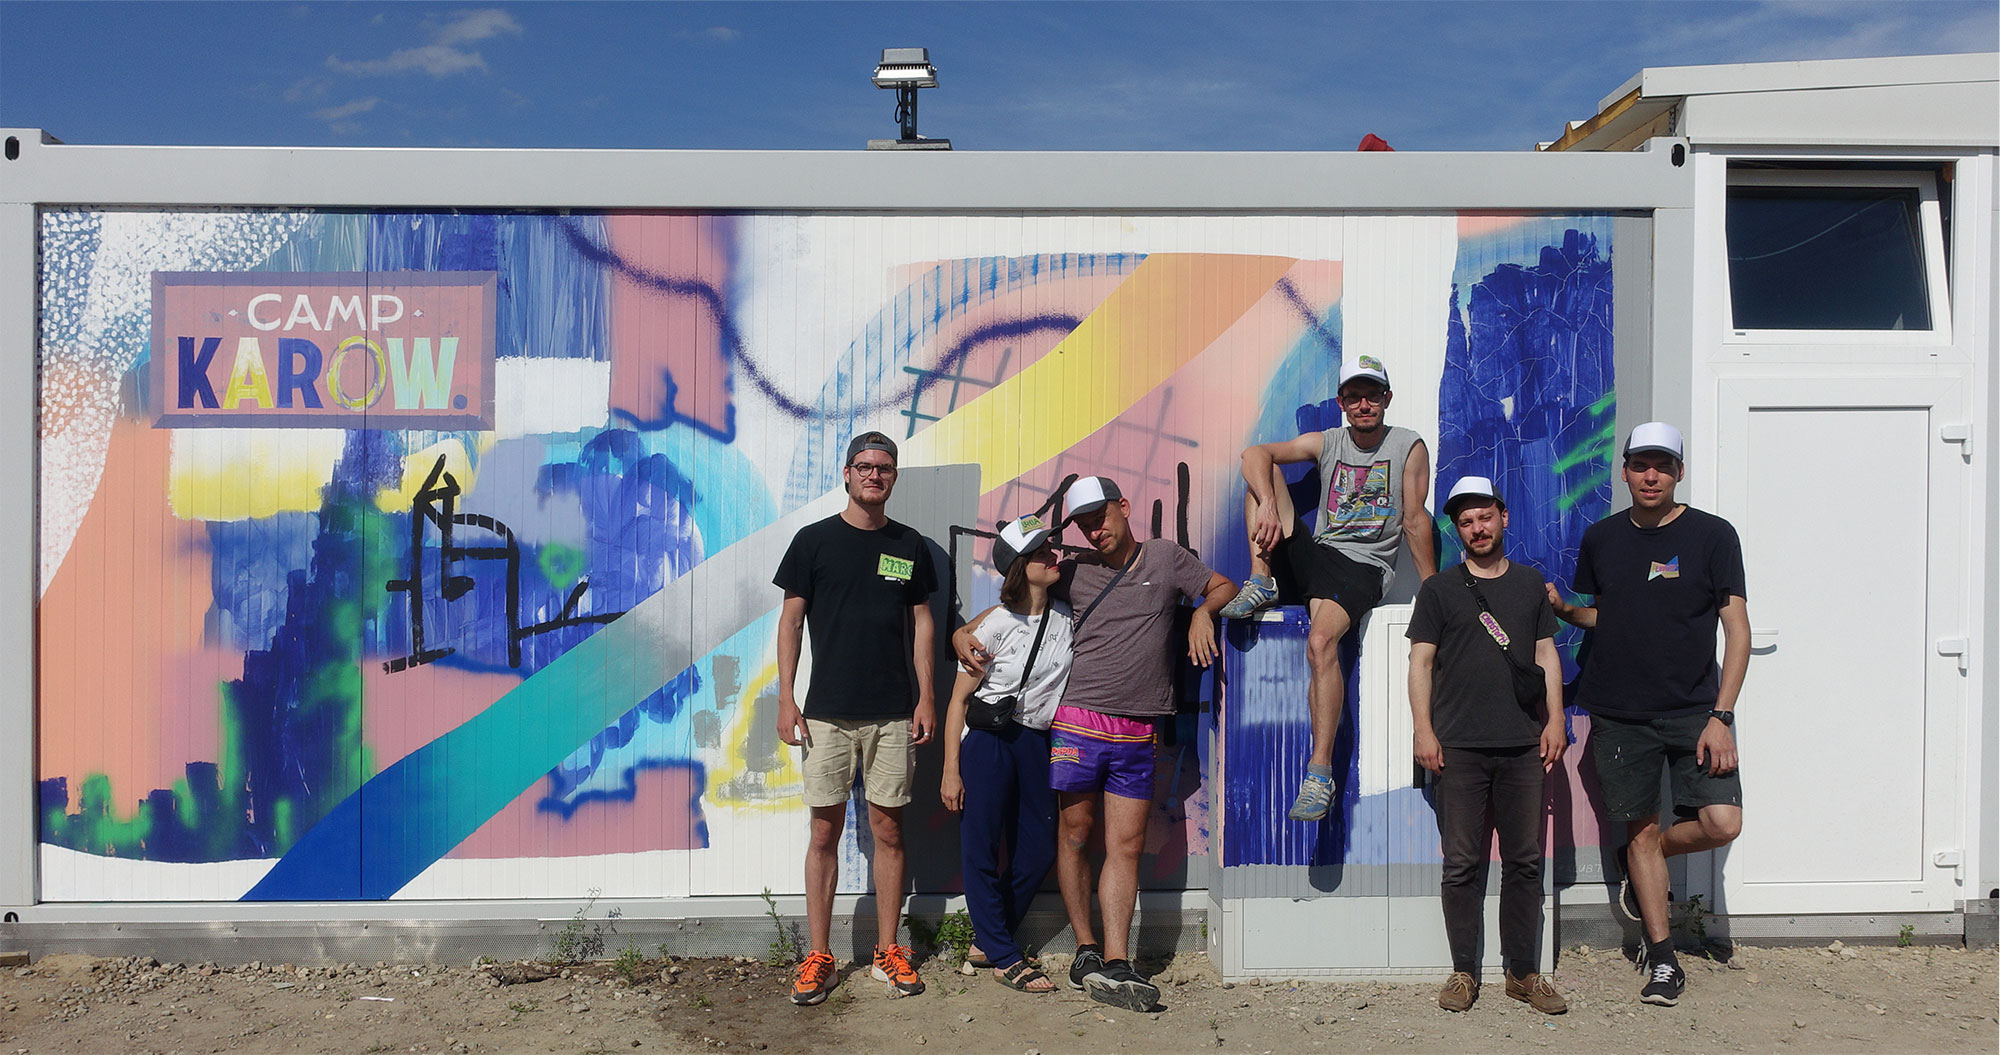 The finished team after we painted a mural